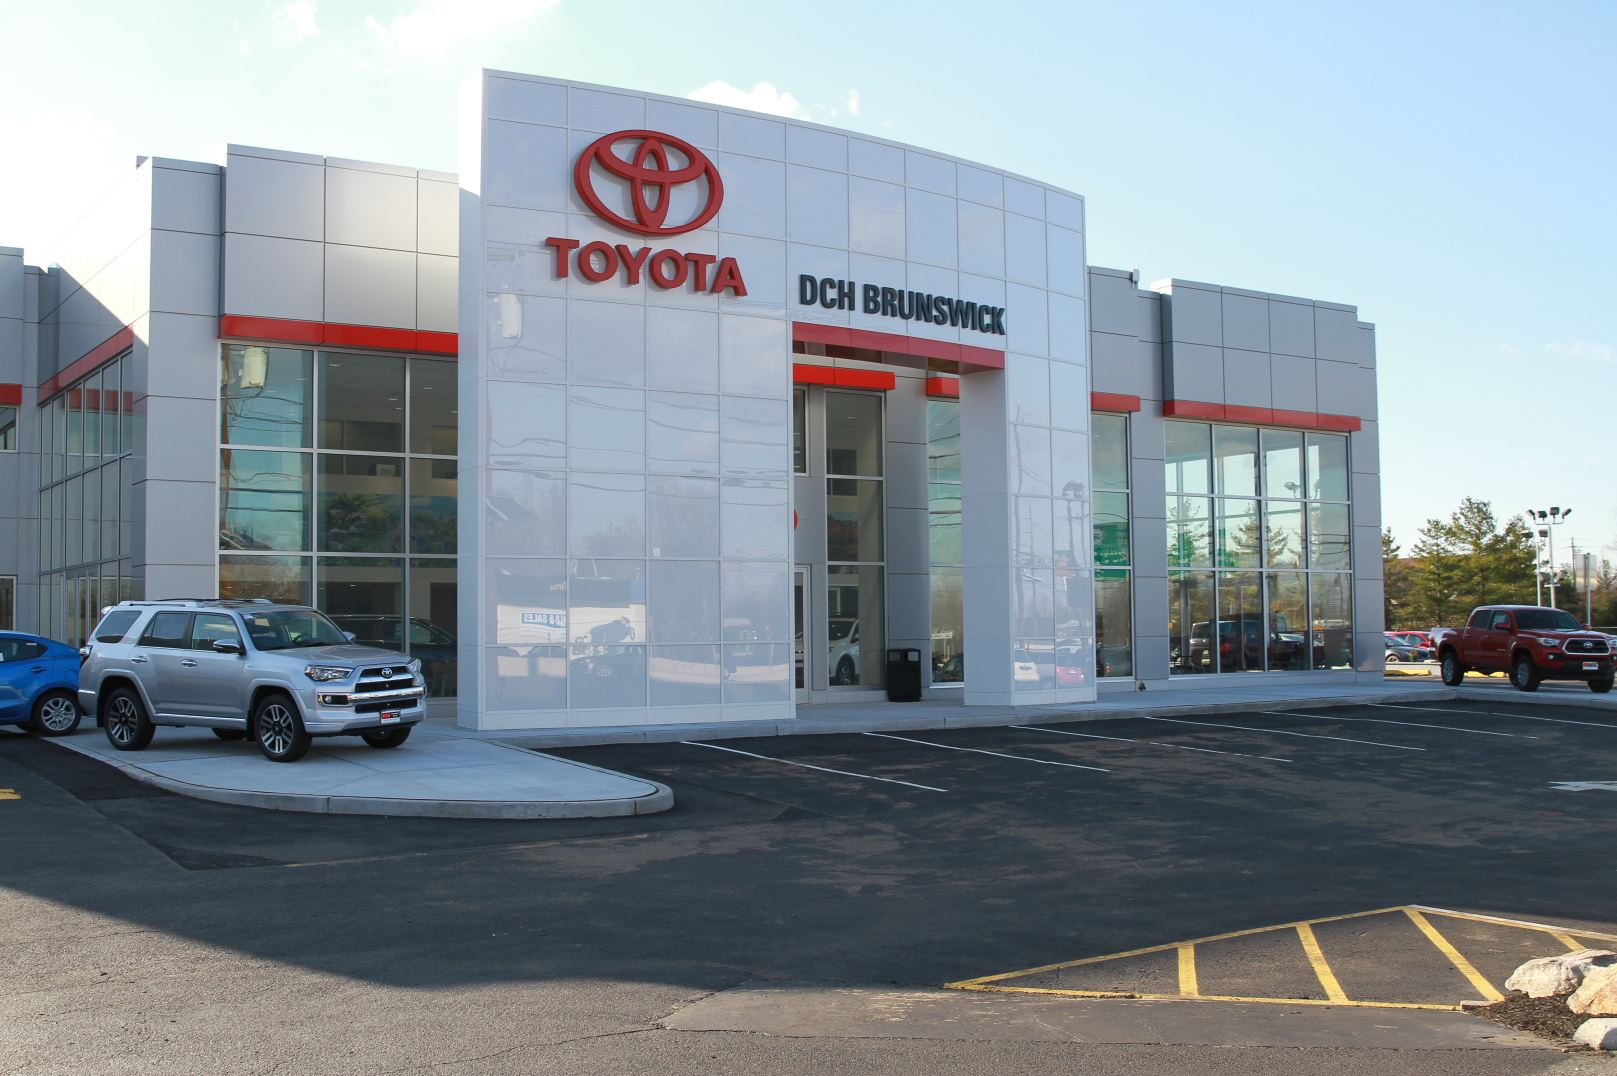 DCH Brunswick Toyotau0027s New Showroom Is Officially Open For Business